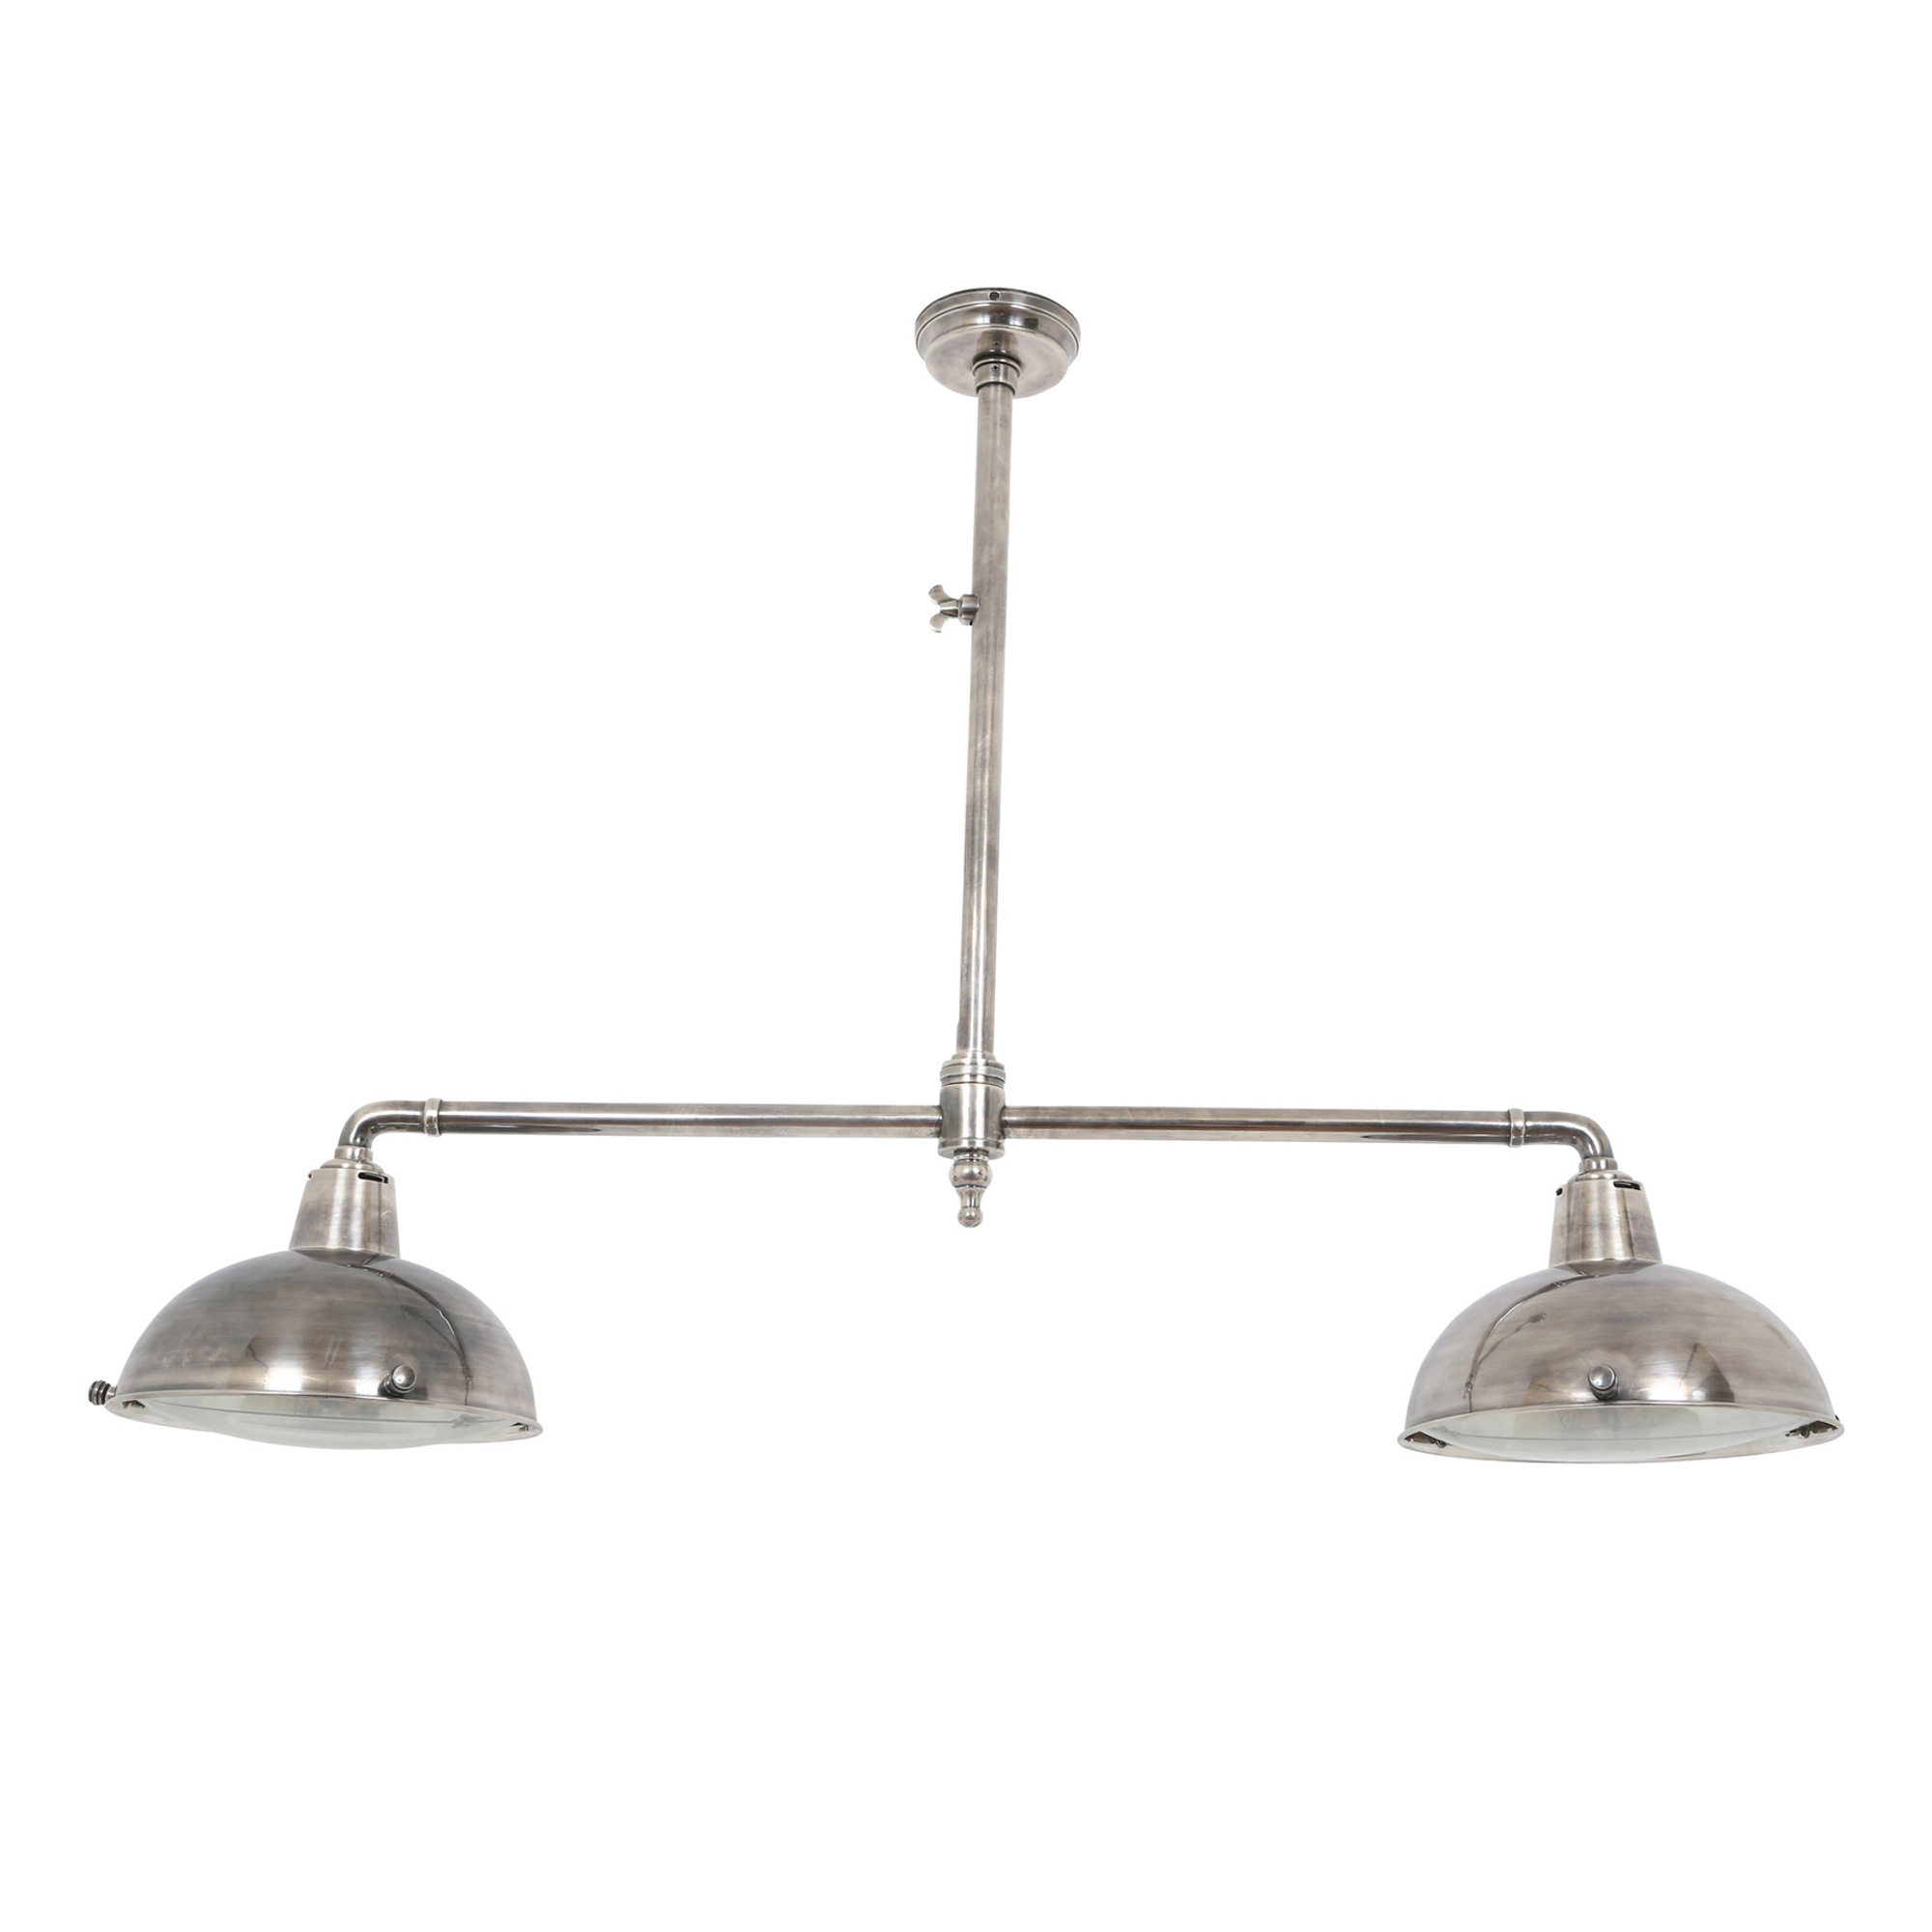 Hanglamp Billiards 2 silver